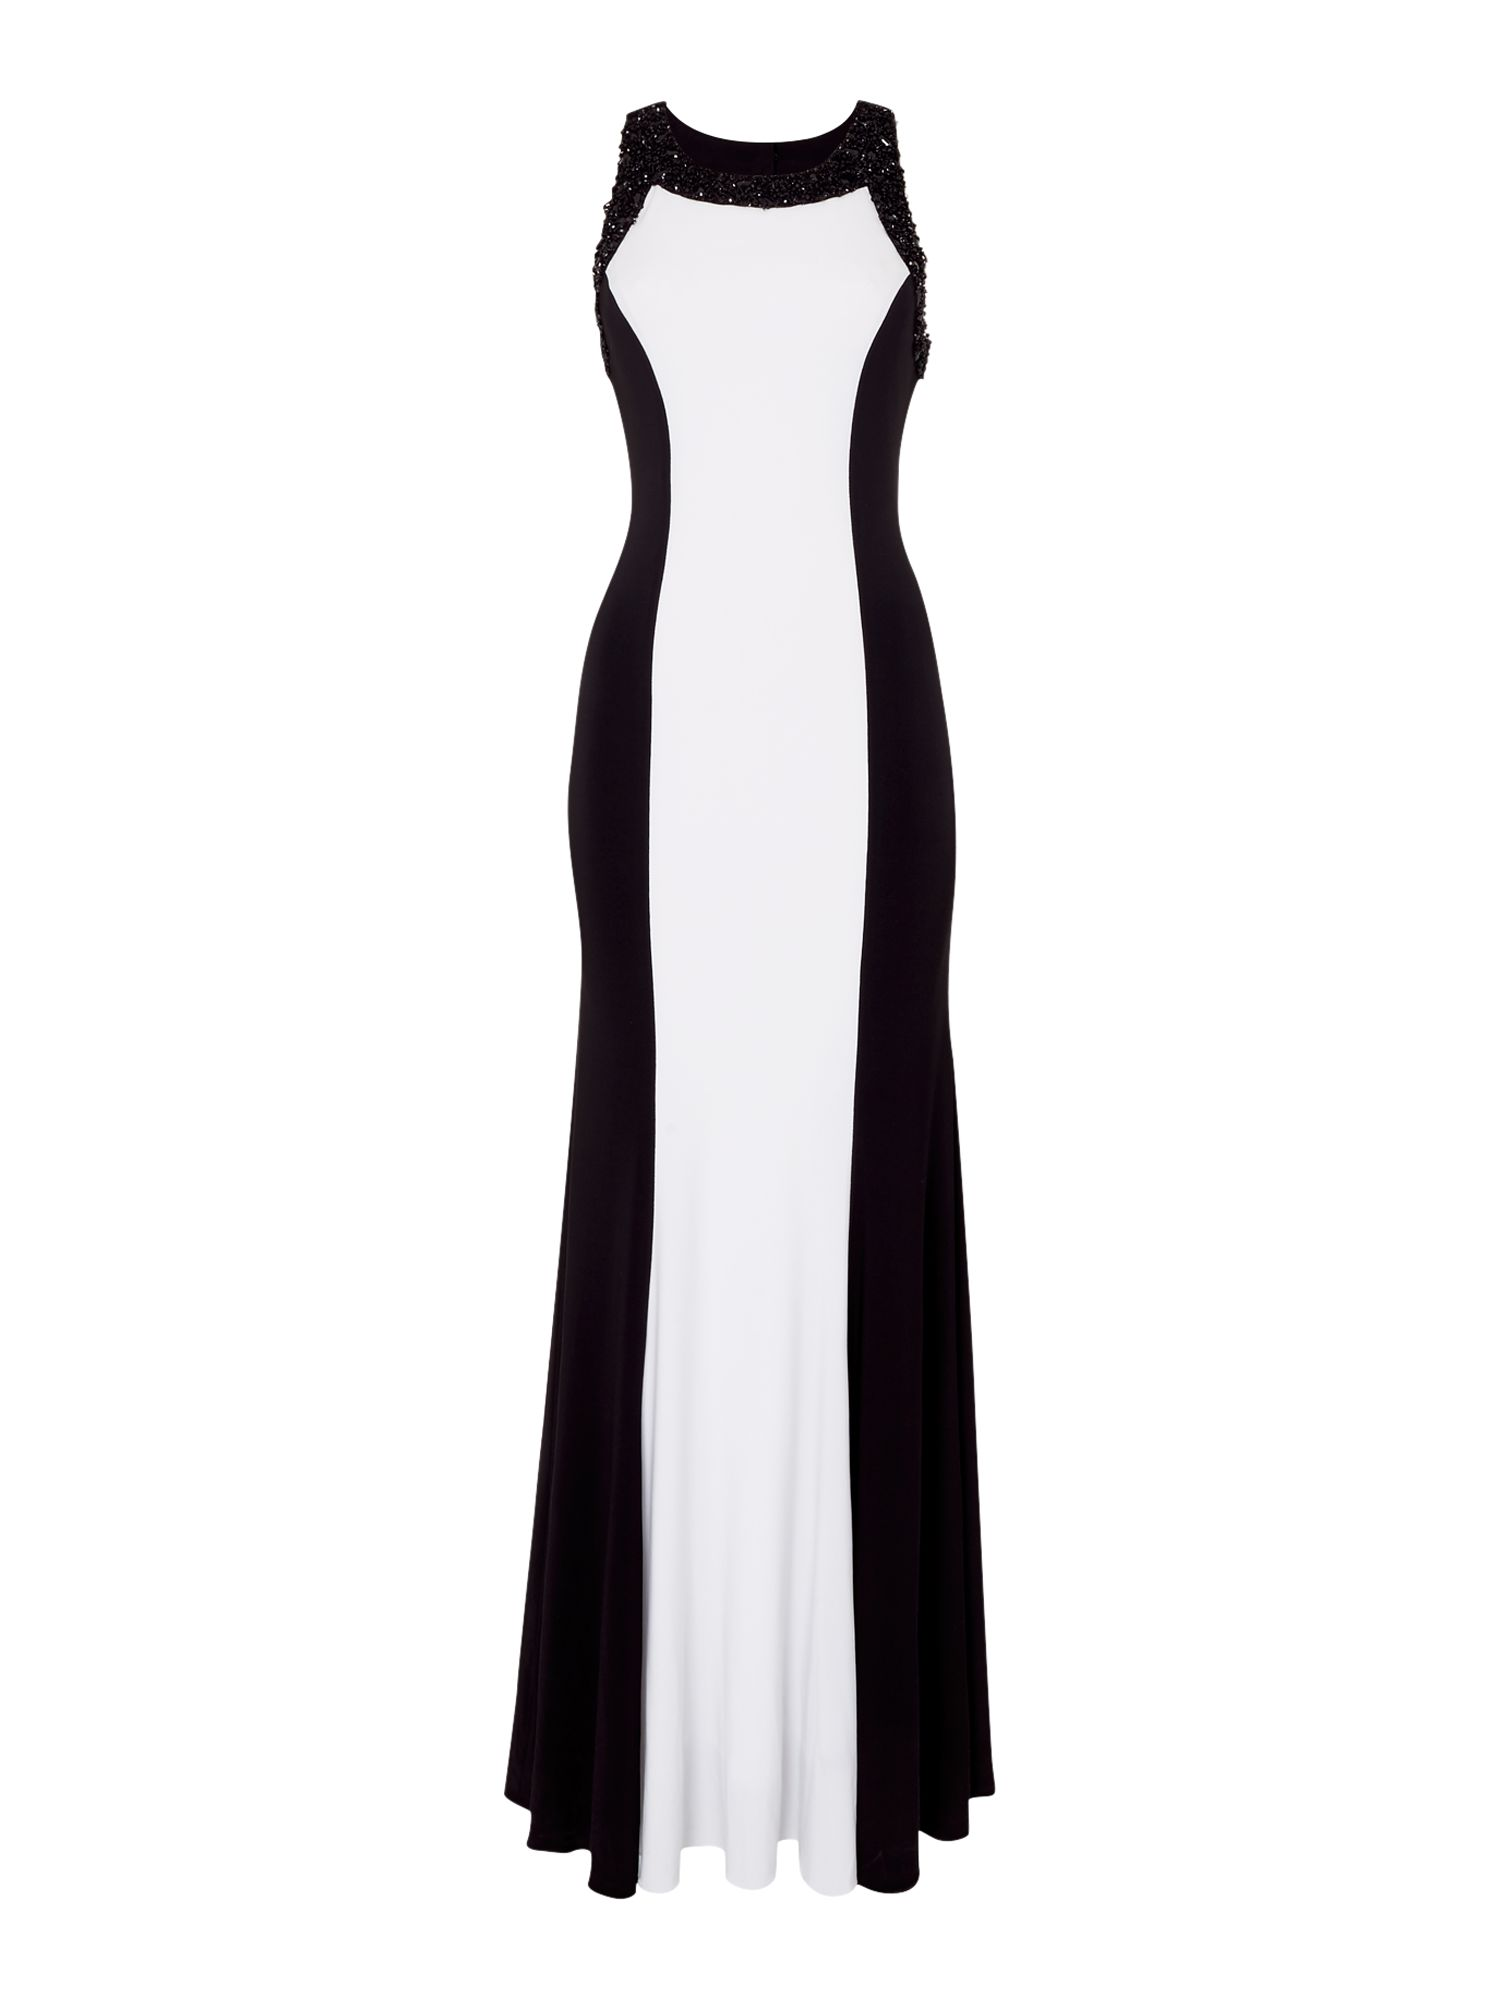 JS Collections Halter Neck Beaded Gown, Black/White